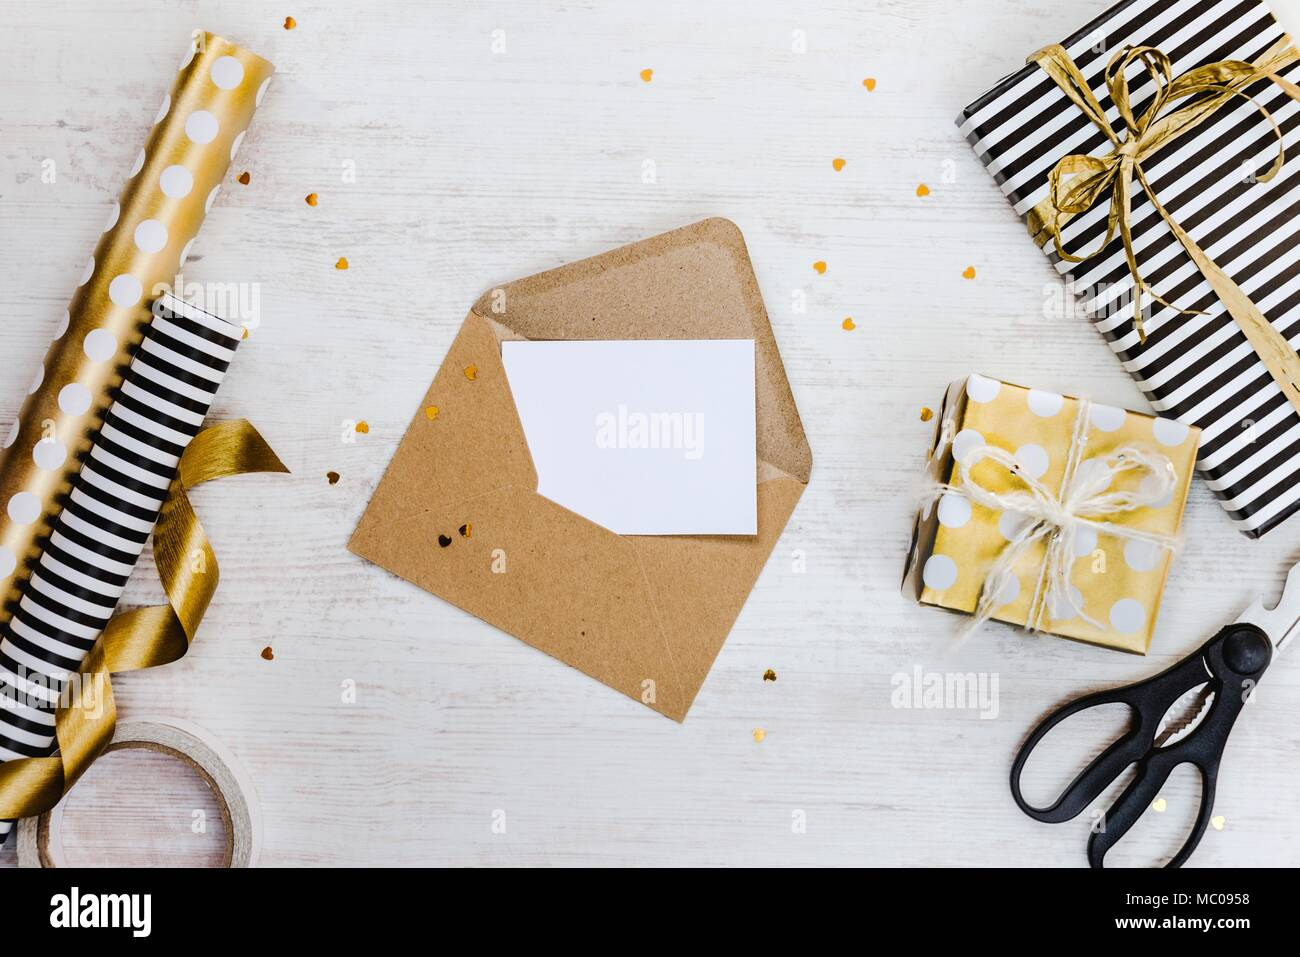 Blank greeting card in a craft envelope gift boxes and wrapping blank greeting card in a craft envelope gift boxes and wrapping materials on a white wood background m4hsunfo